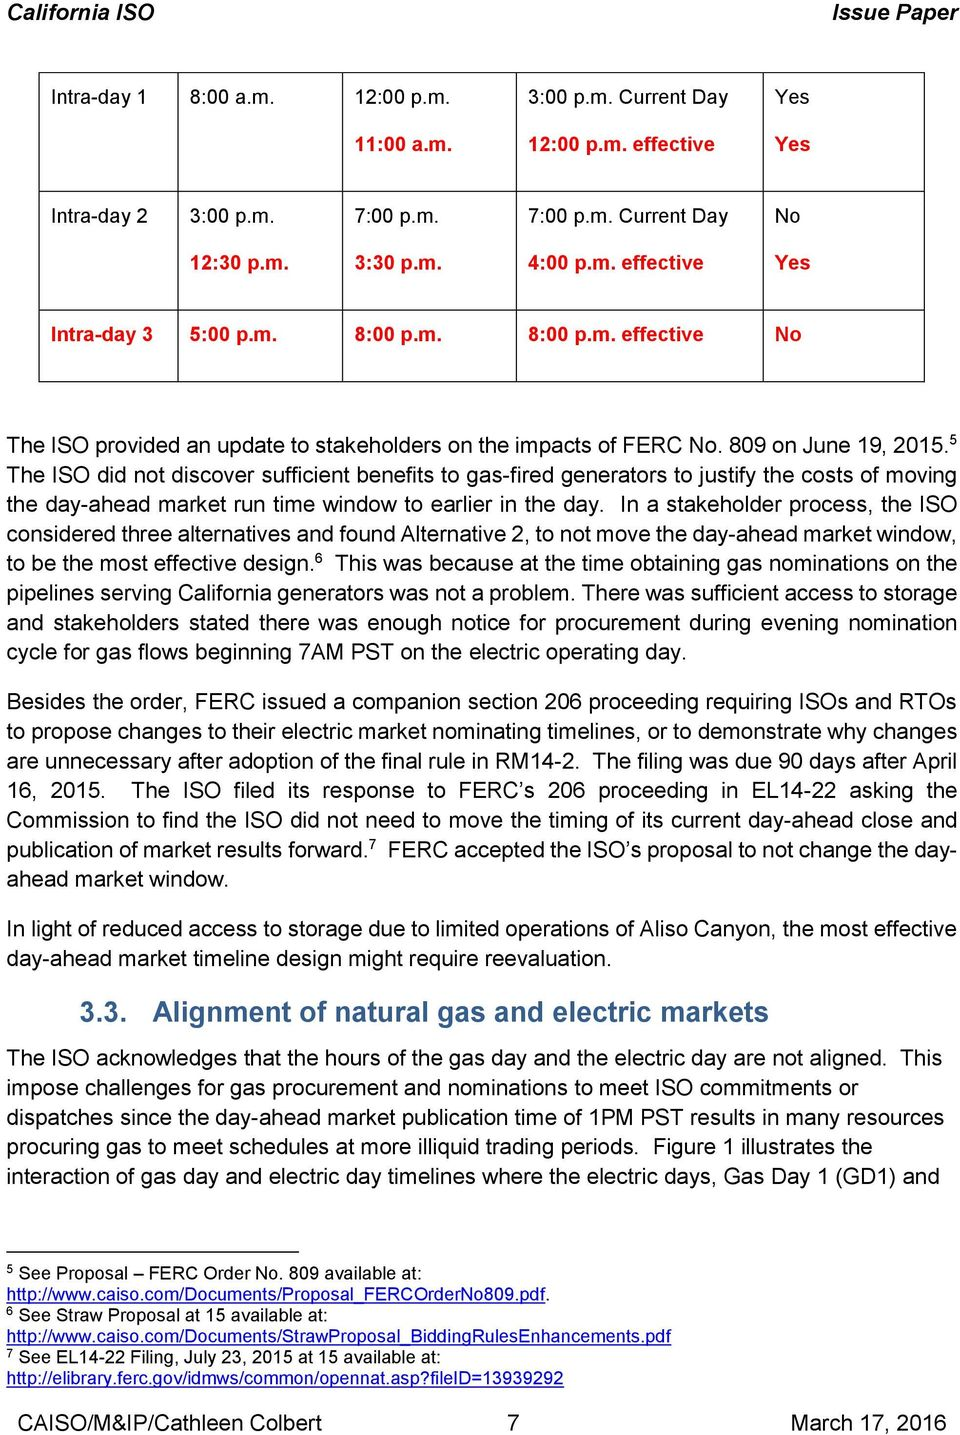 5 The ISO did not discover sufficient benefits to gas-fired generators to justify the costs of moving the day-ahead market run time window to earlier in the day.